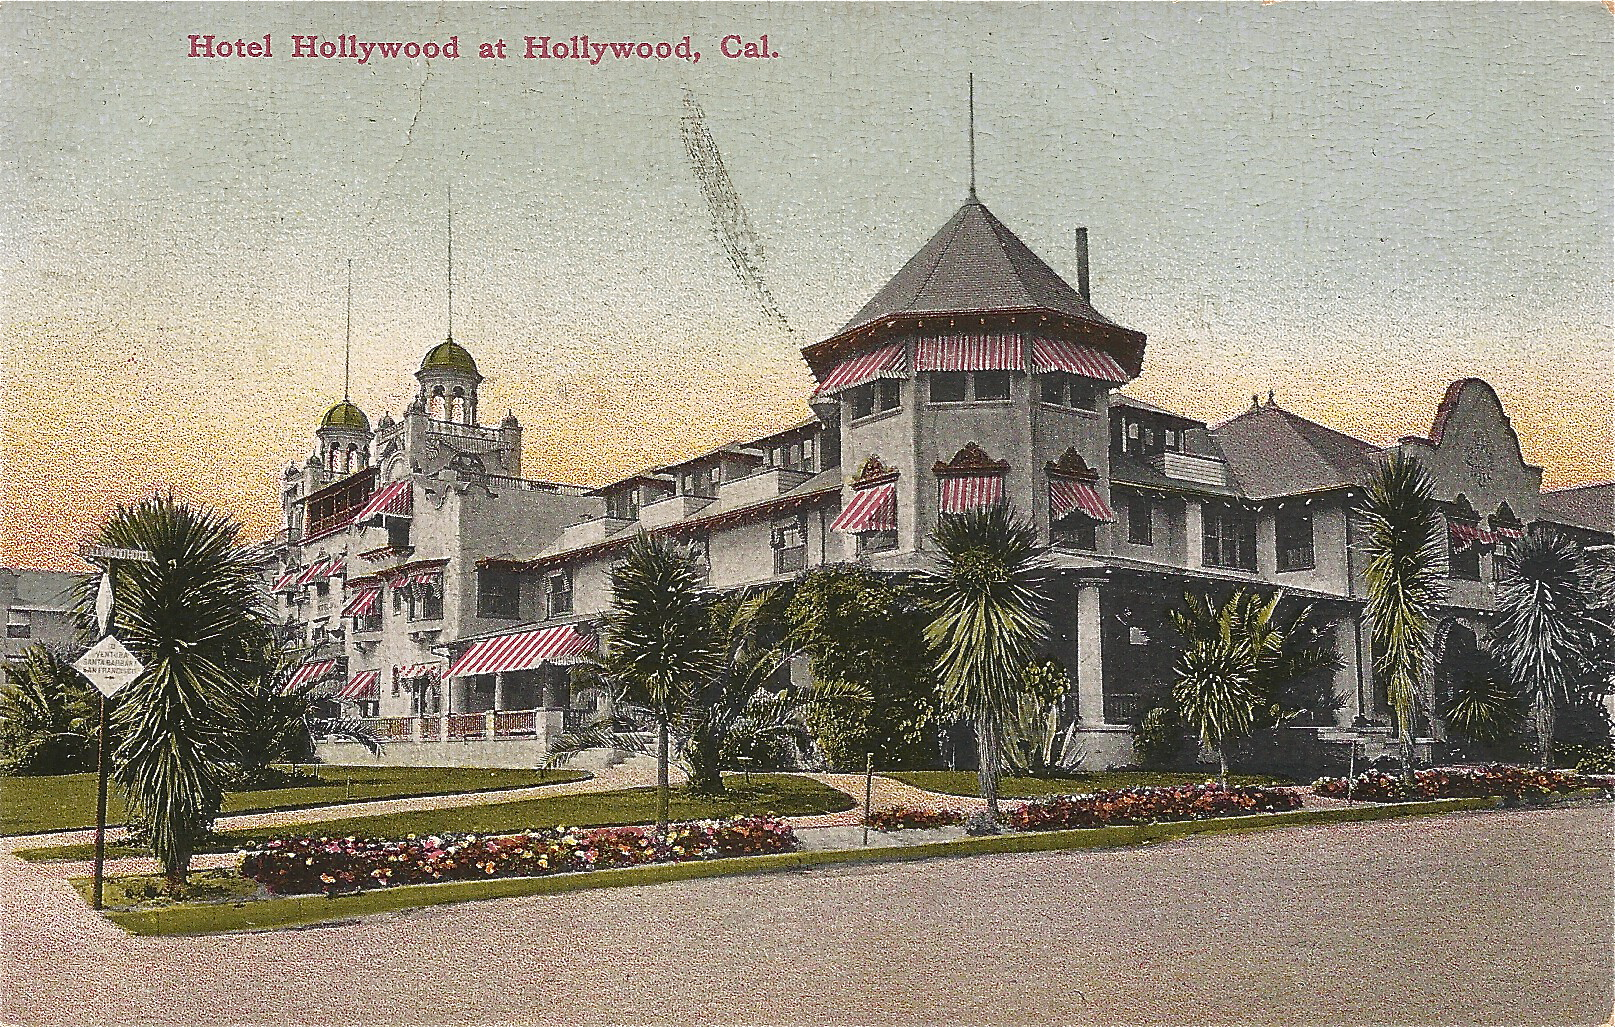 Hotel Hollywood, at the intersection of Hollywood & Highland